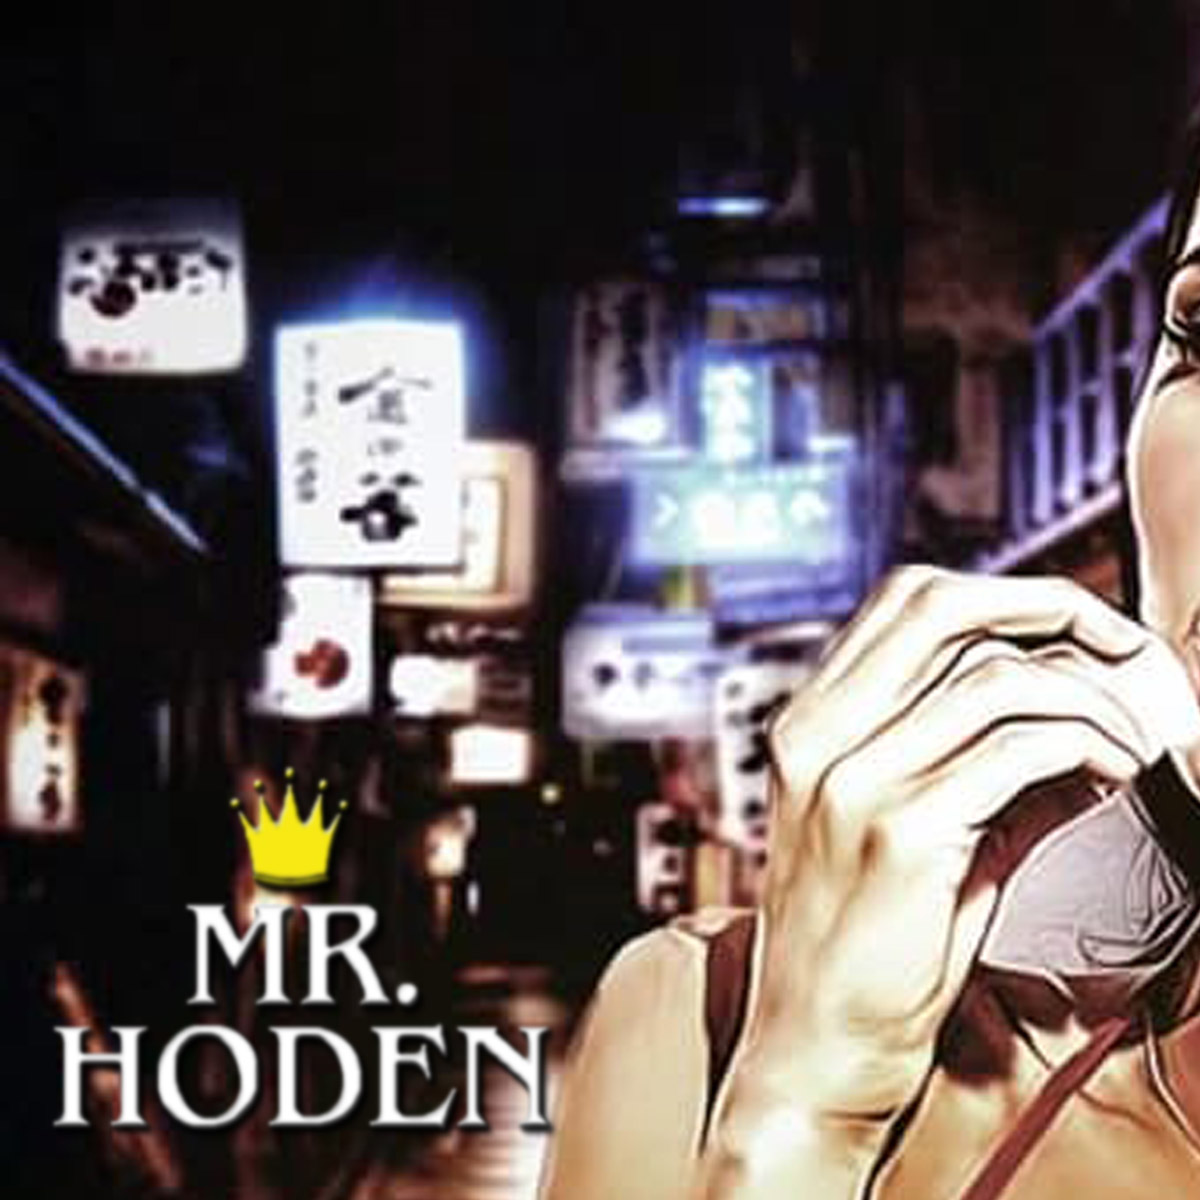 Upcoming: Mr. Hoden - Badass Chill Rap Beat 2019 [FREE BEAT]